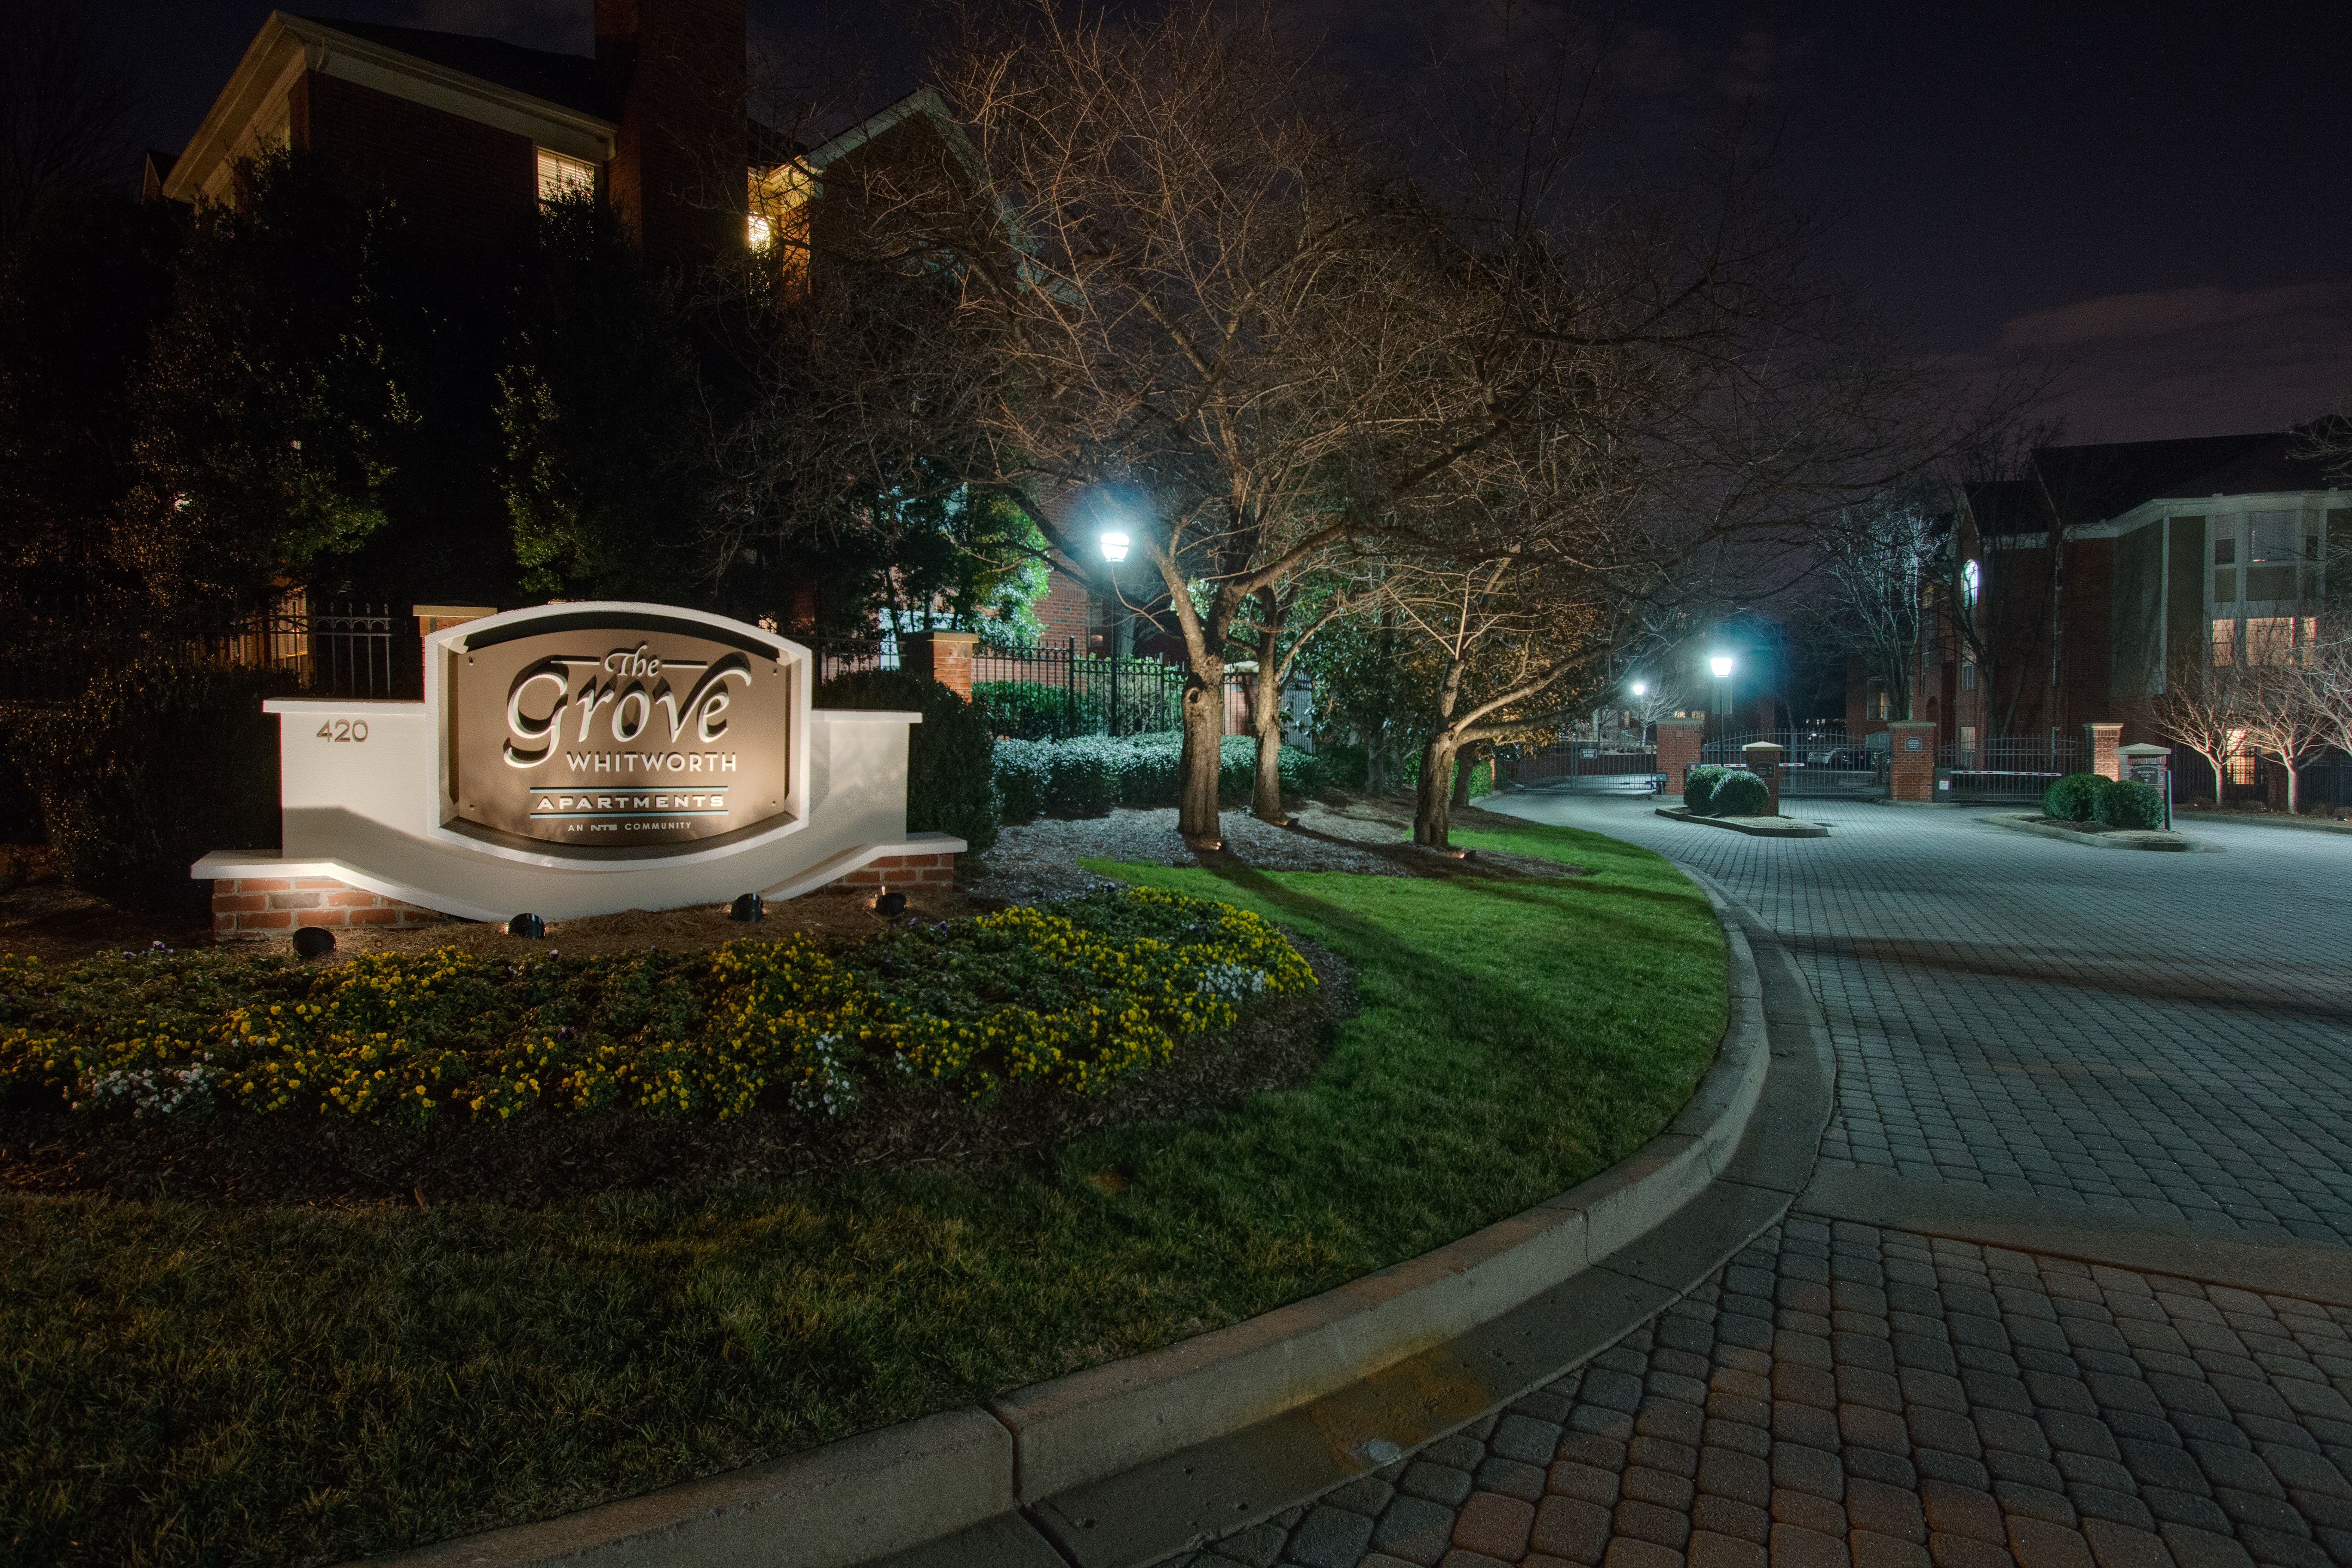 Outdoor lighting company lightscapes southern outdoor lighting - Nashville Signage Outdoor Lighting For The Grove At Wentworth Apartments In Green Hills Tn